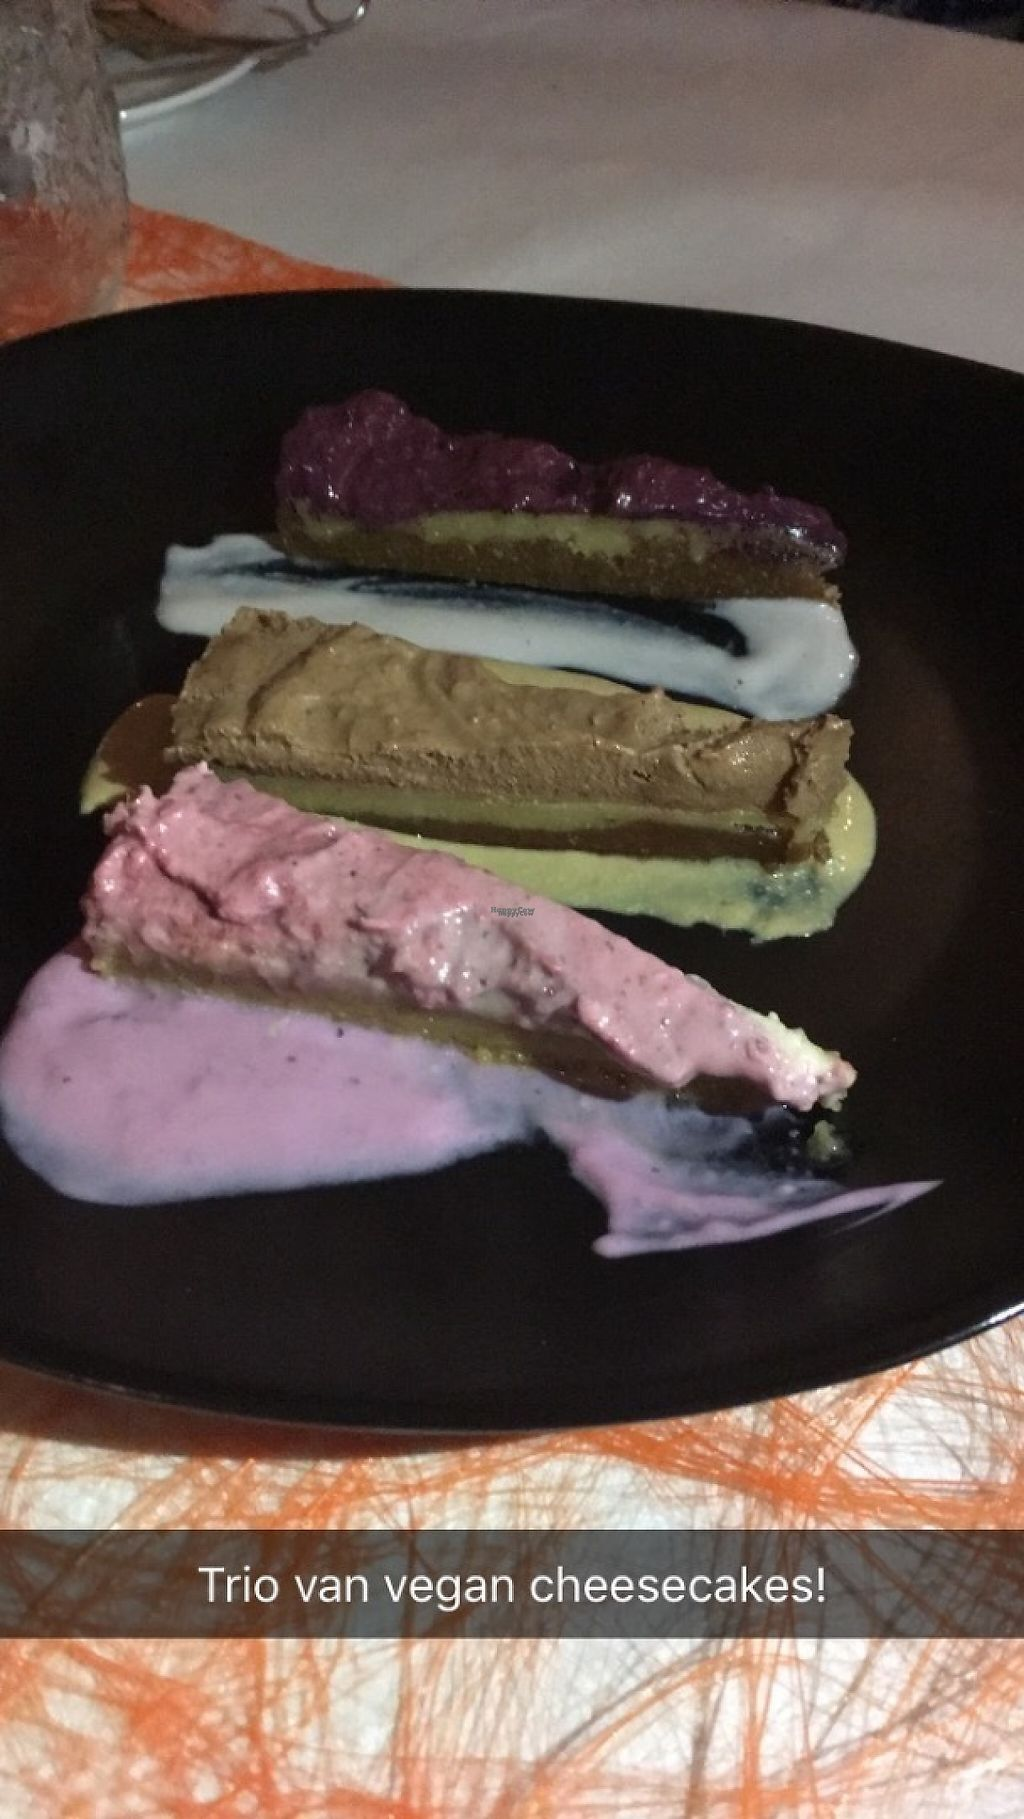 """Photo of CLOSED: Sprouts  by <a href=""""/members/profile/aertskato"""">aertskato</a> <br/>Trio of cheesecakes at Sprouts <br/> April 14, 2017  - <a href='/contact/abuse/image/63862/247927'>Report</a>"""